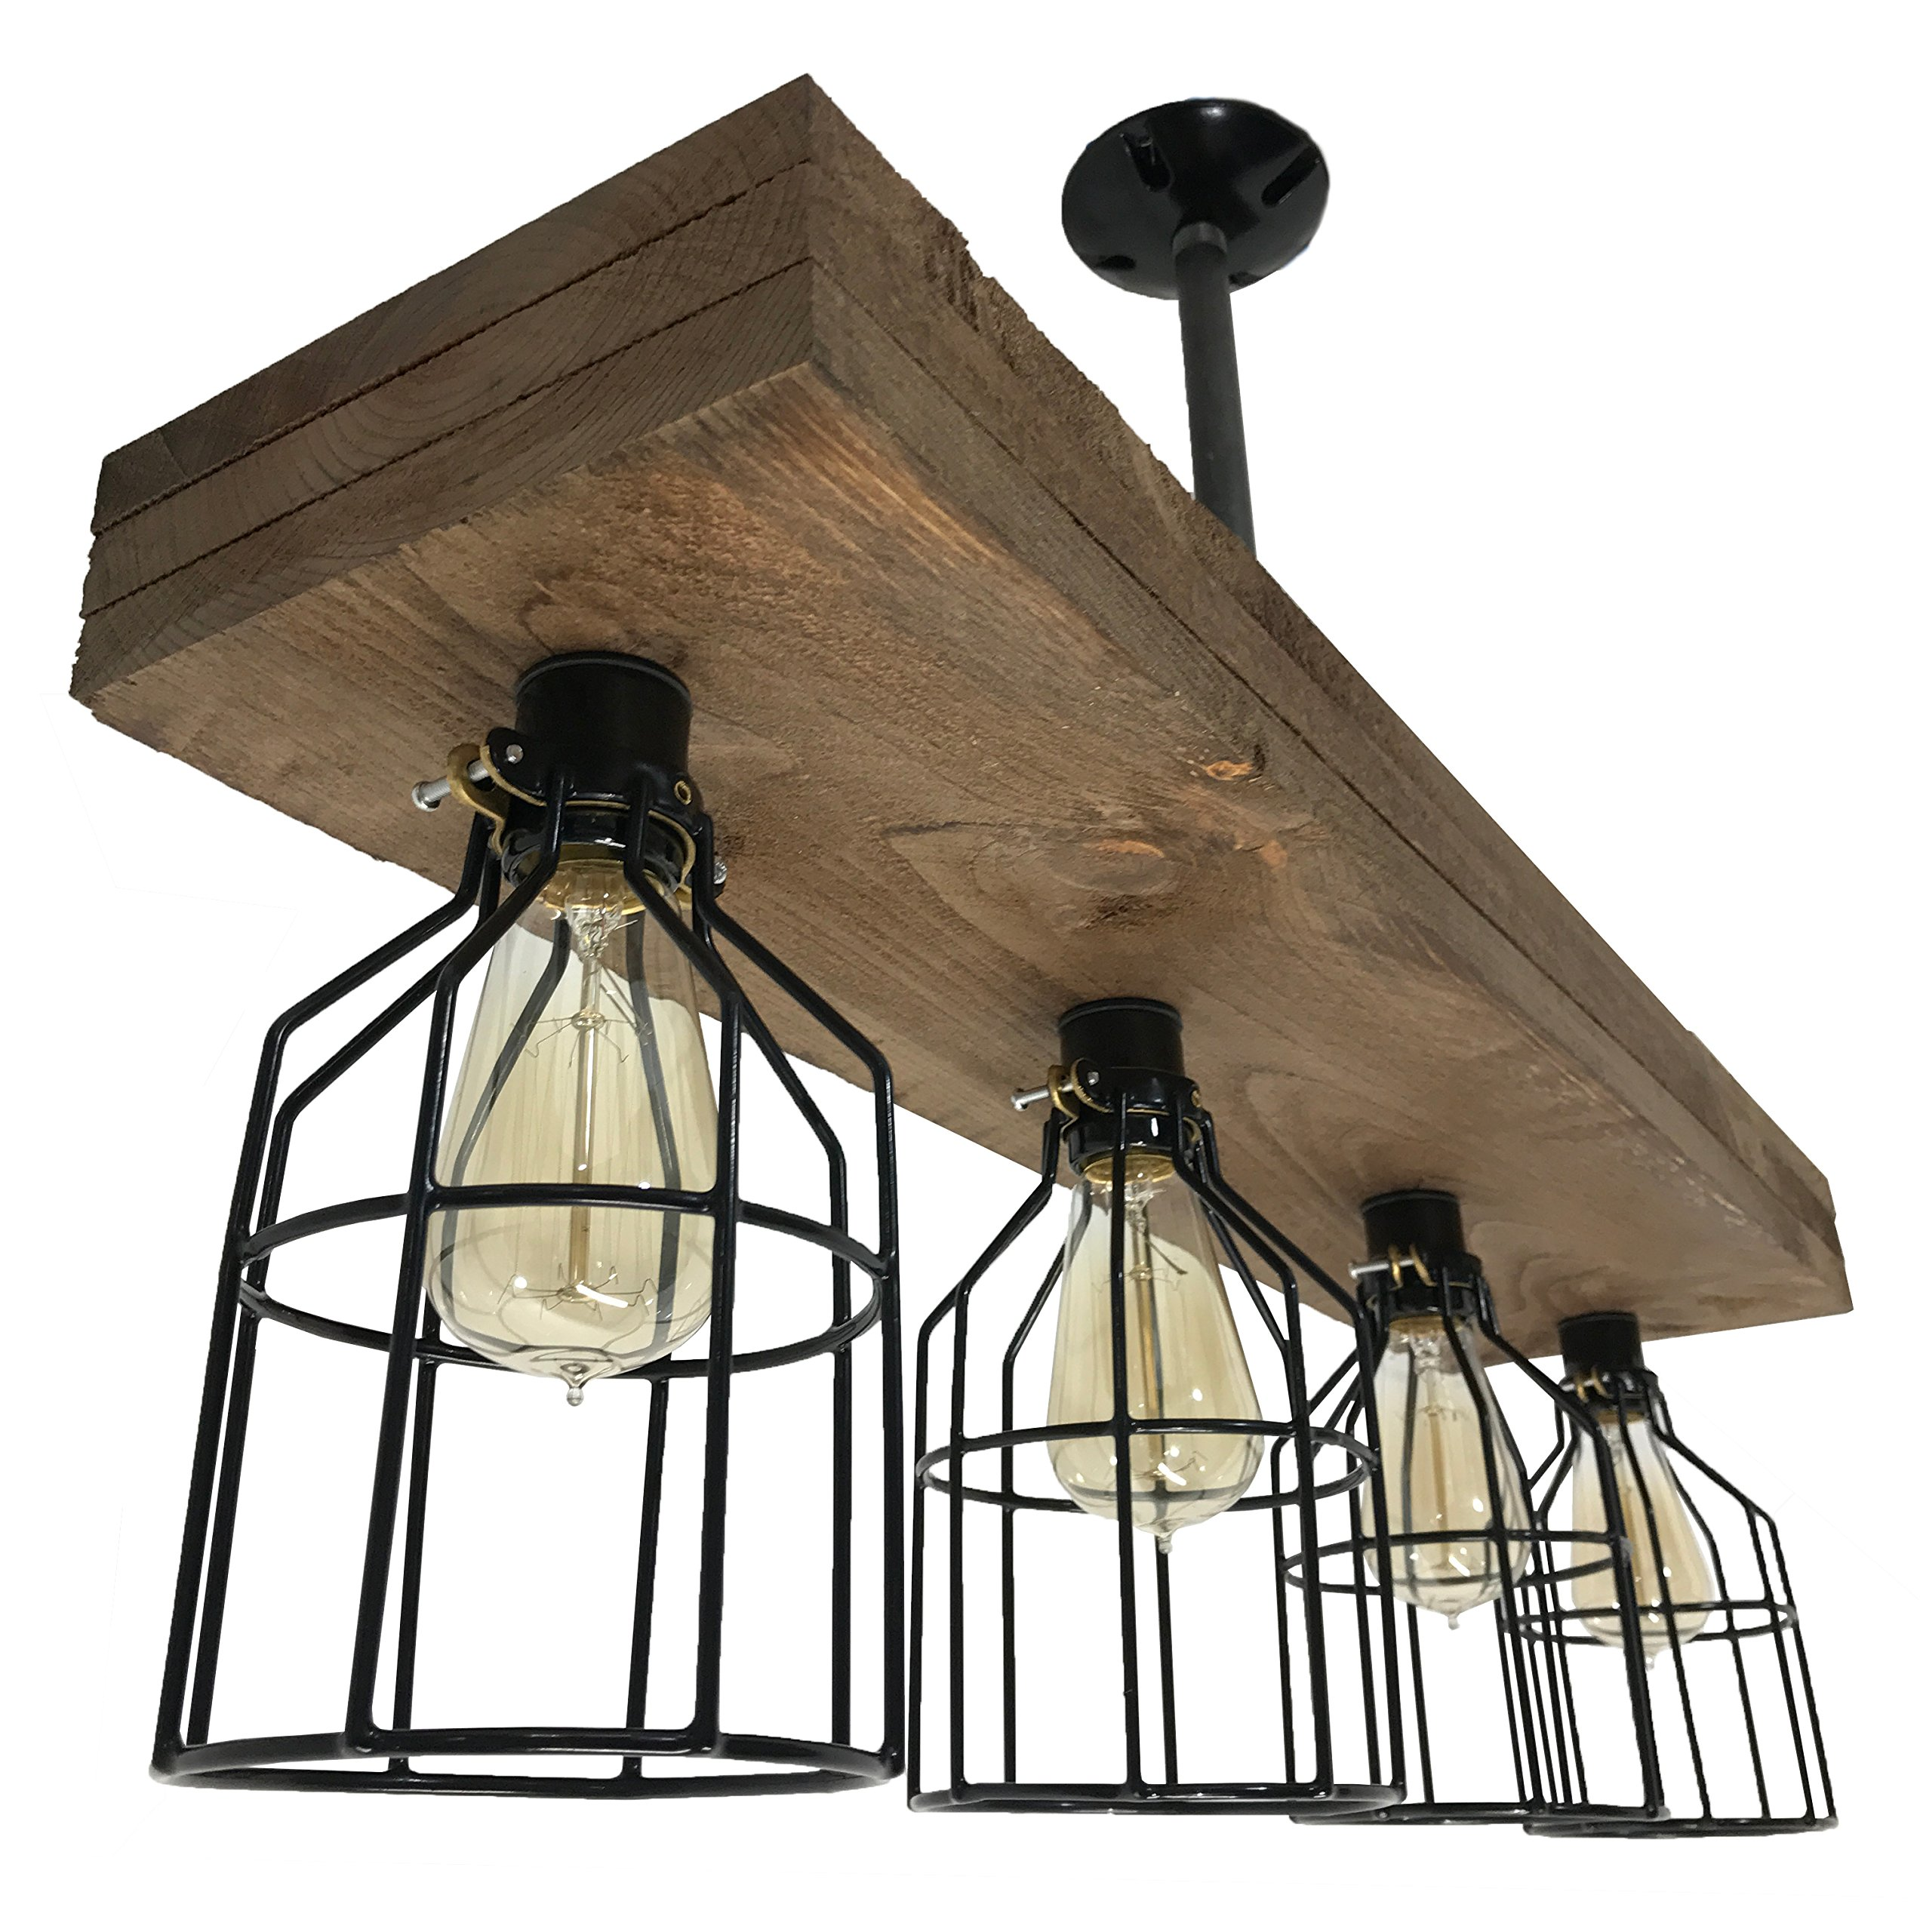 Farmhouse Lighting Triple Wood Beam Vintage Decor Chandelier Light - Great in Kitchen, Bar, Industrial, Island, Billiard, Foyer and Edison Bulb. Wooden Reclaimed Rustic Four Light With Cages by Barrister & Joiner Lighting